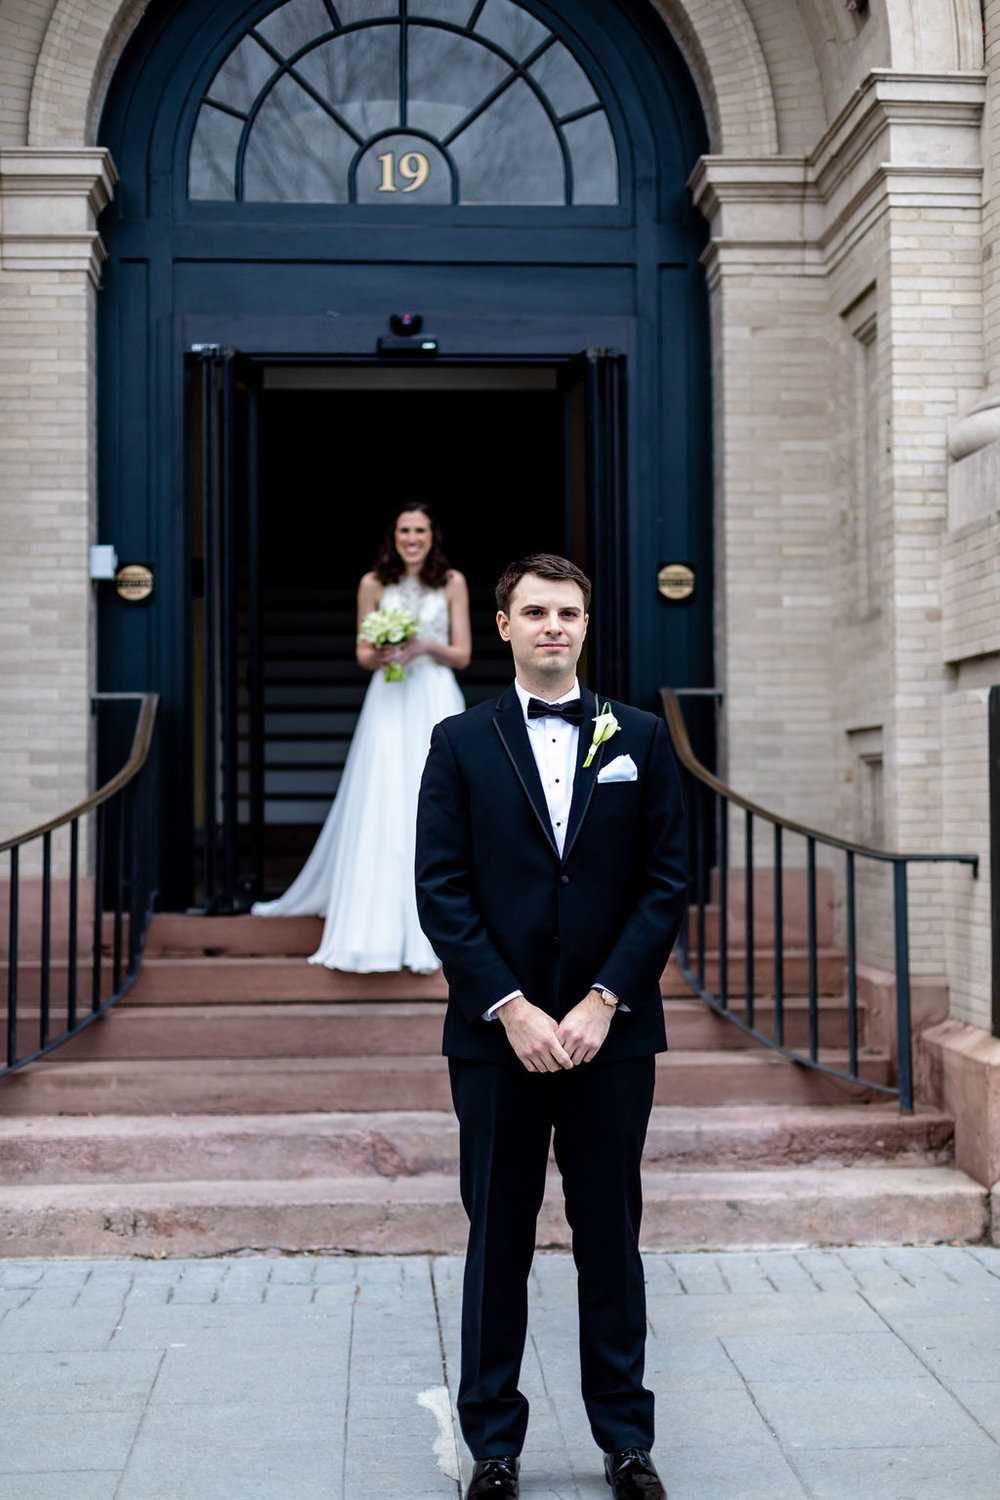 First look in front of the building at the entrance of 19 Main - Pearl Weddings & Events